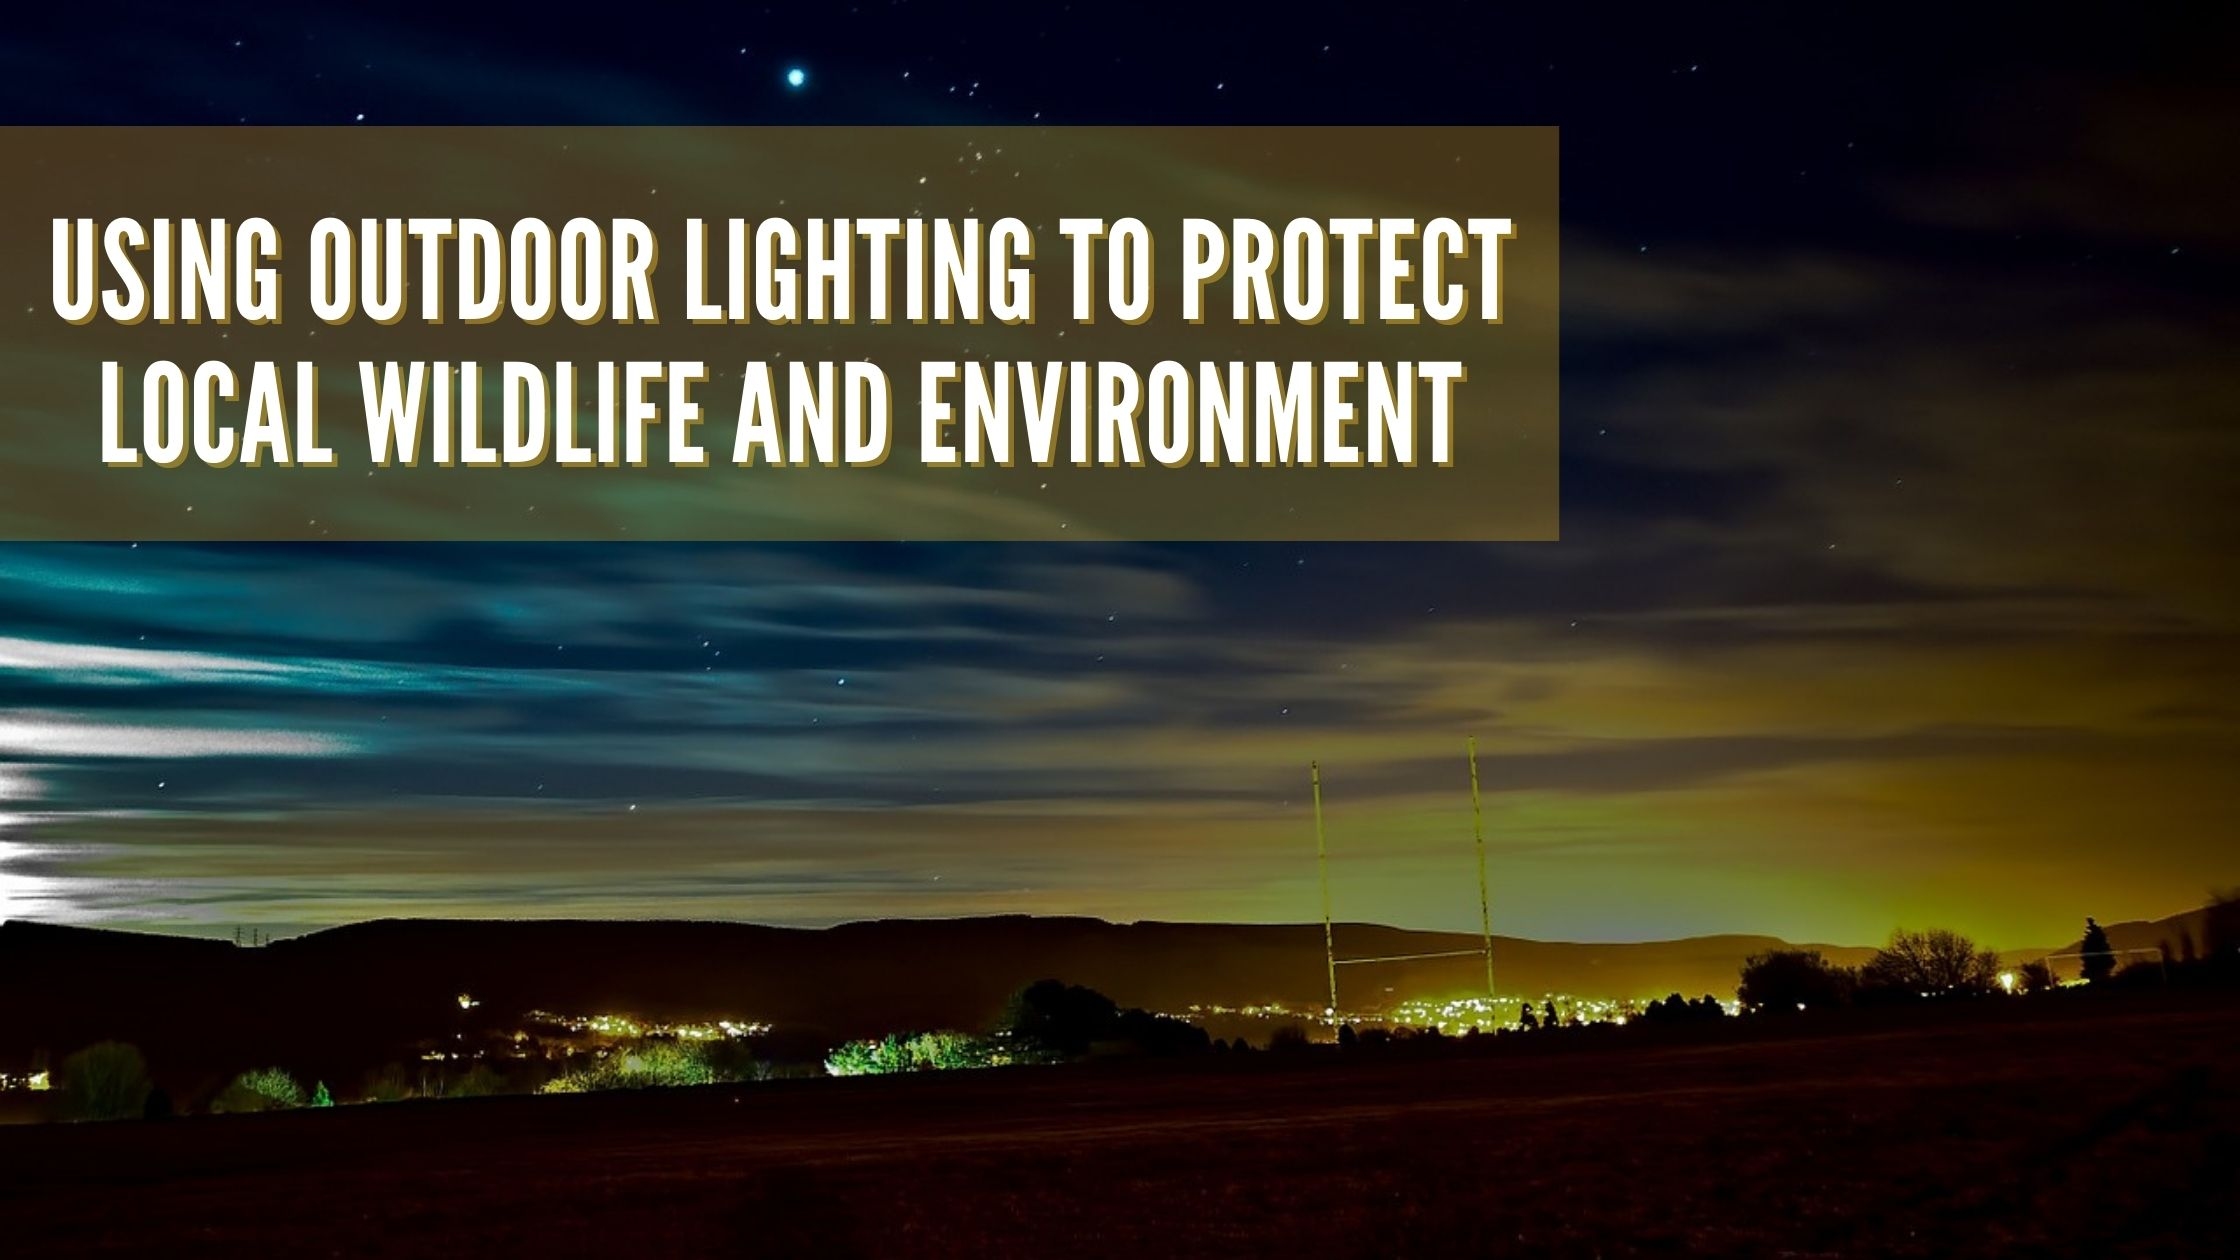 Using Outdoor Lighting to Protect Local Wildlife and Environment